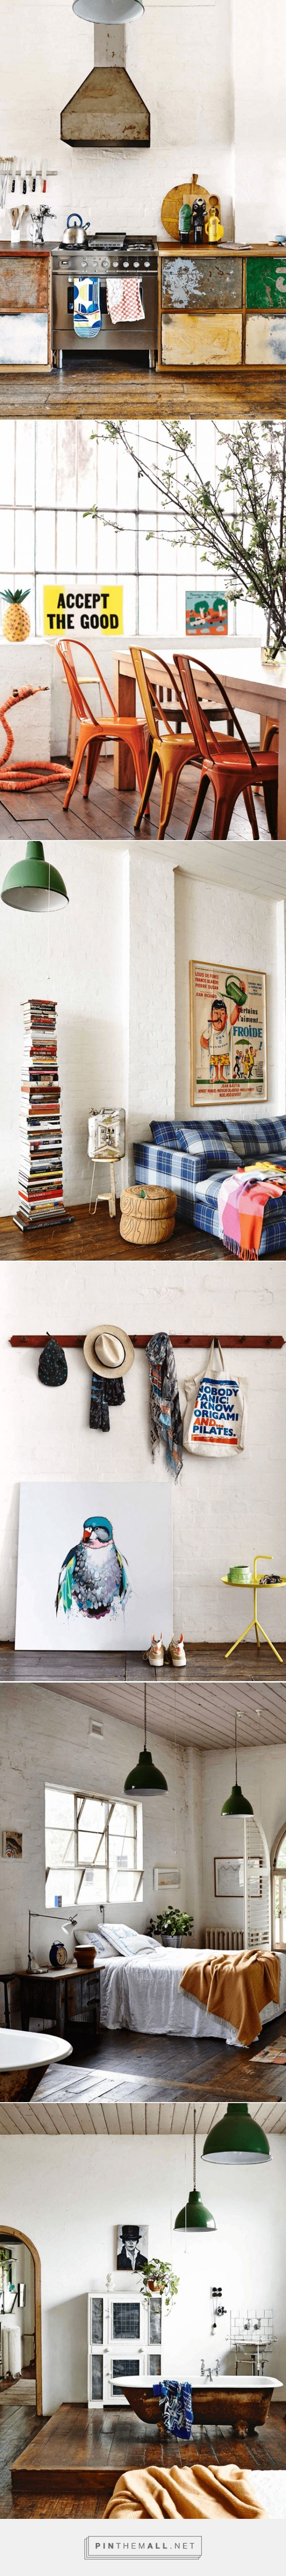 From Leather Factory to Beautiful Home - Kate Young Design - created via https://pinthemall.net